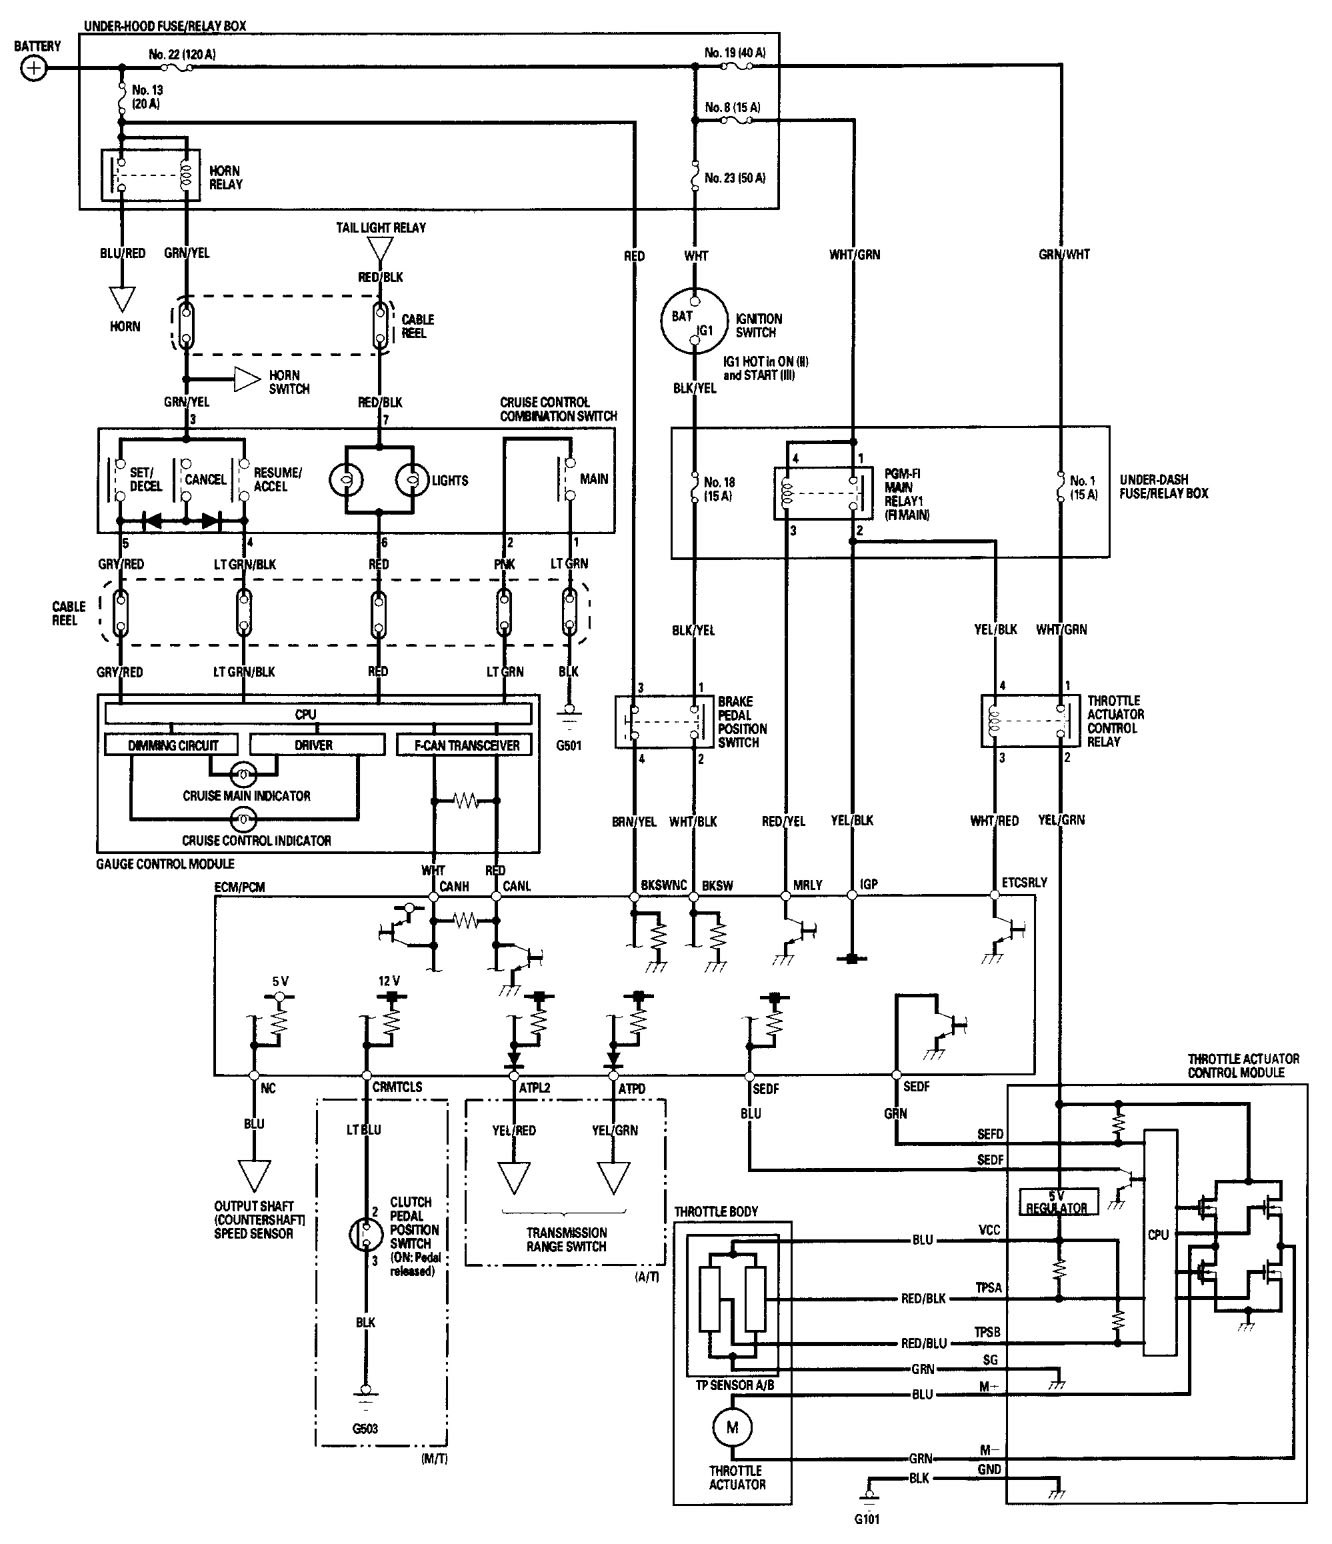 Kenworth T800 Engine Fan Wiring Diagram